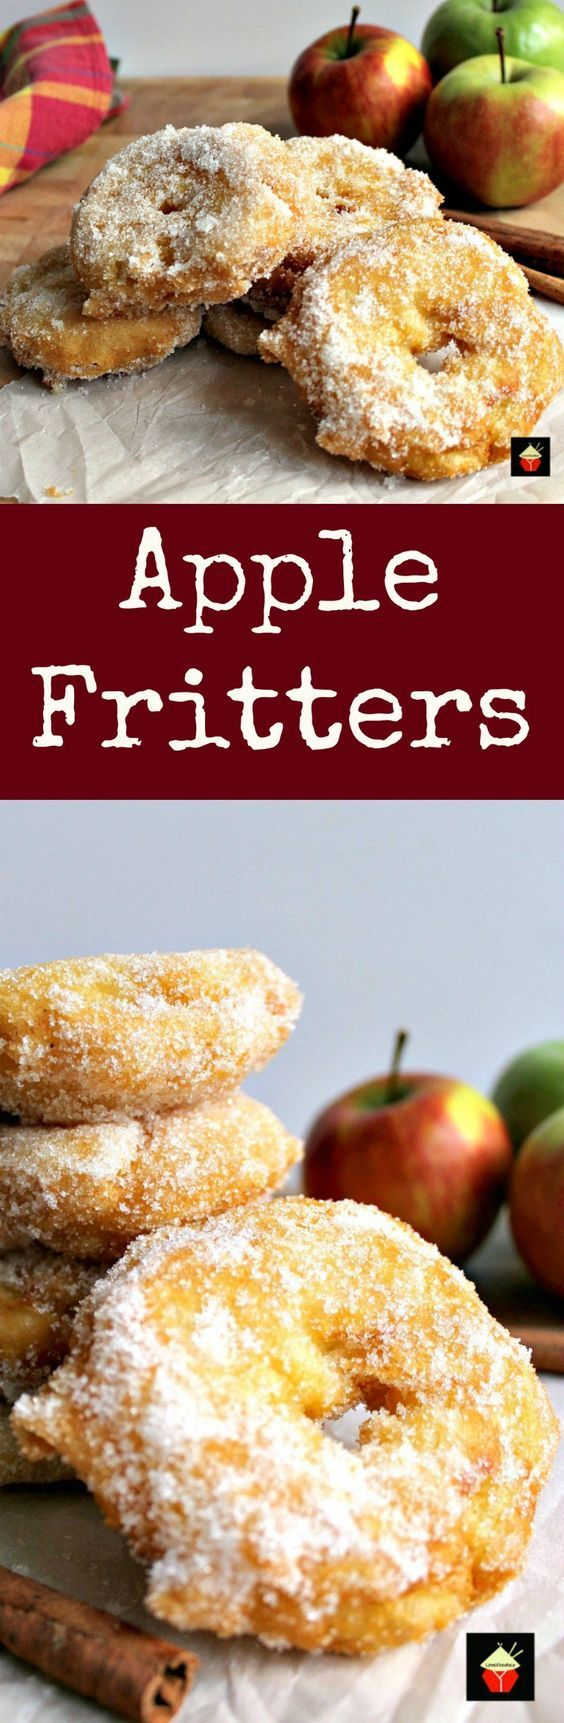 Leckeres Nachtisch Rezept für Naschkatzen - Apfelküchlein in 5 min *** Quick and easy recipe - Apple Fritters. Served warm with a drizzle of syrup, honey or a blob of ice cream.. makes for a perfect dessert!